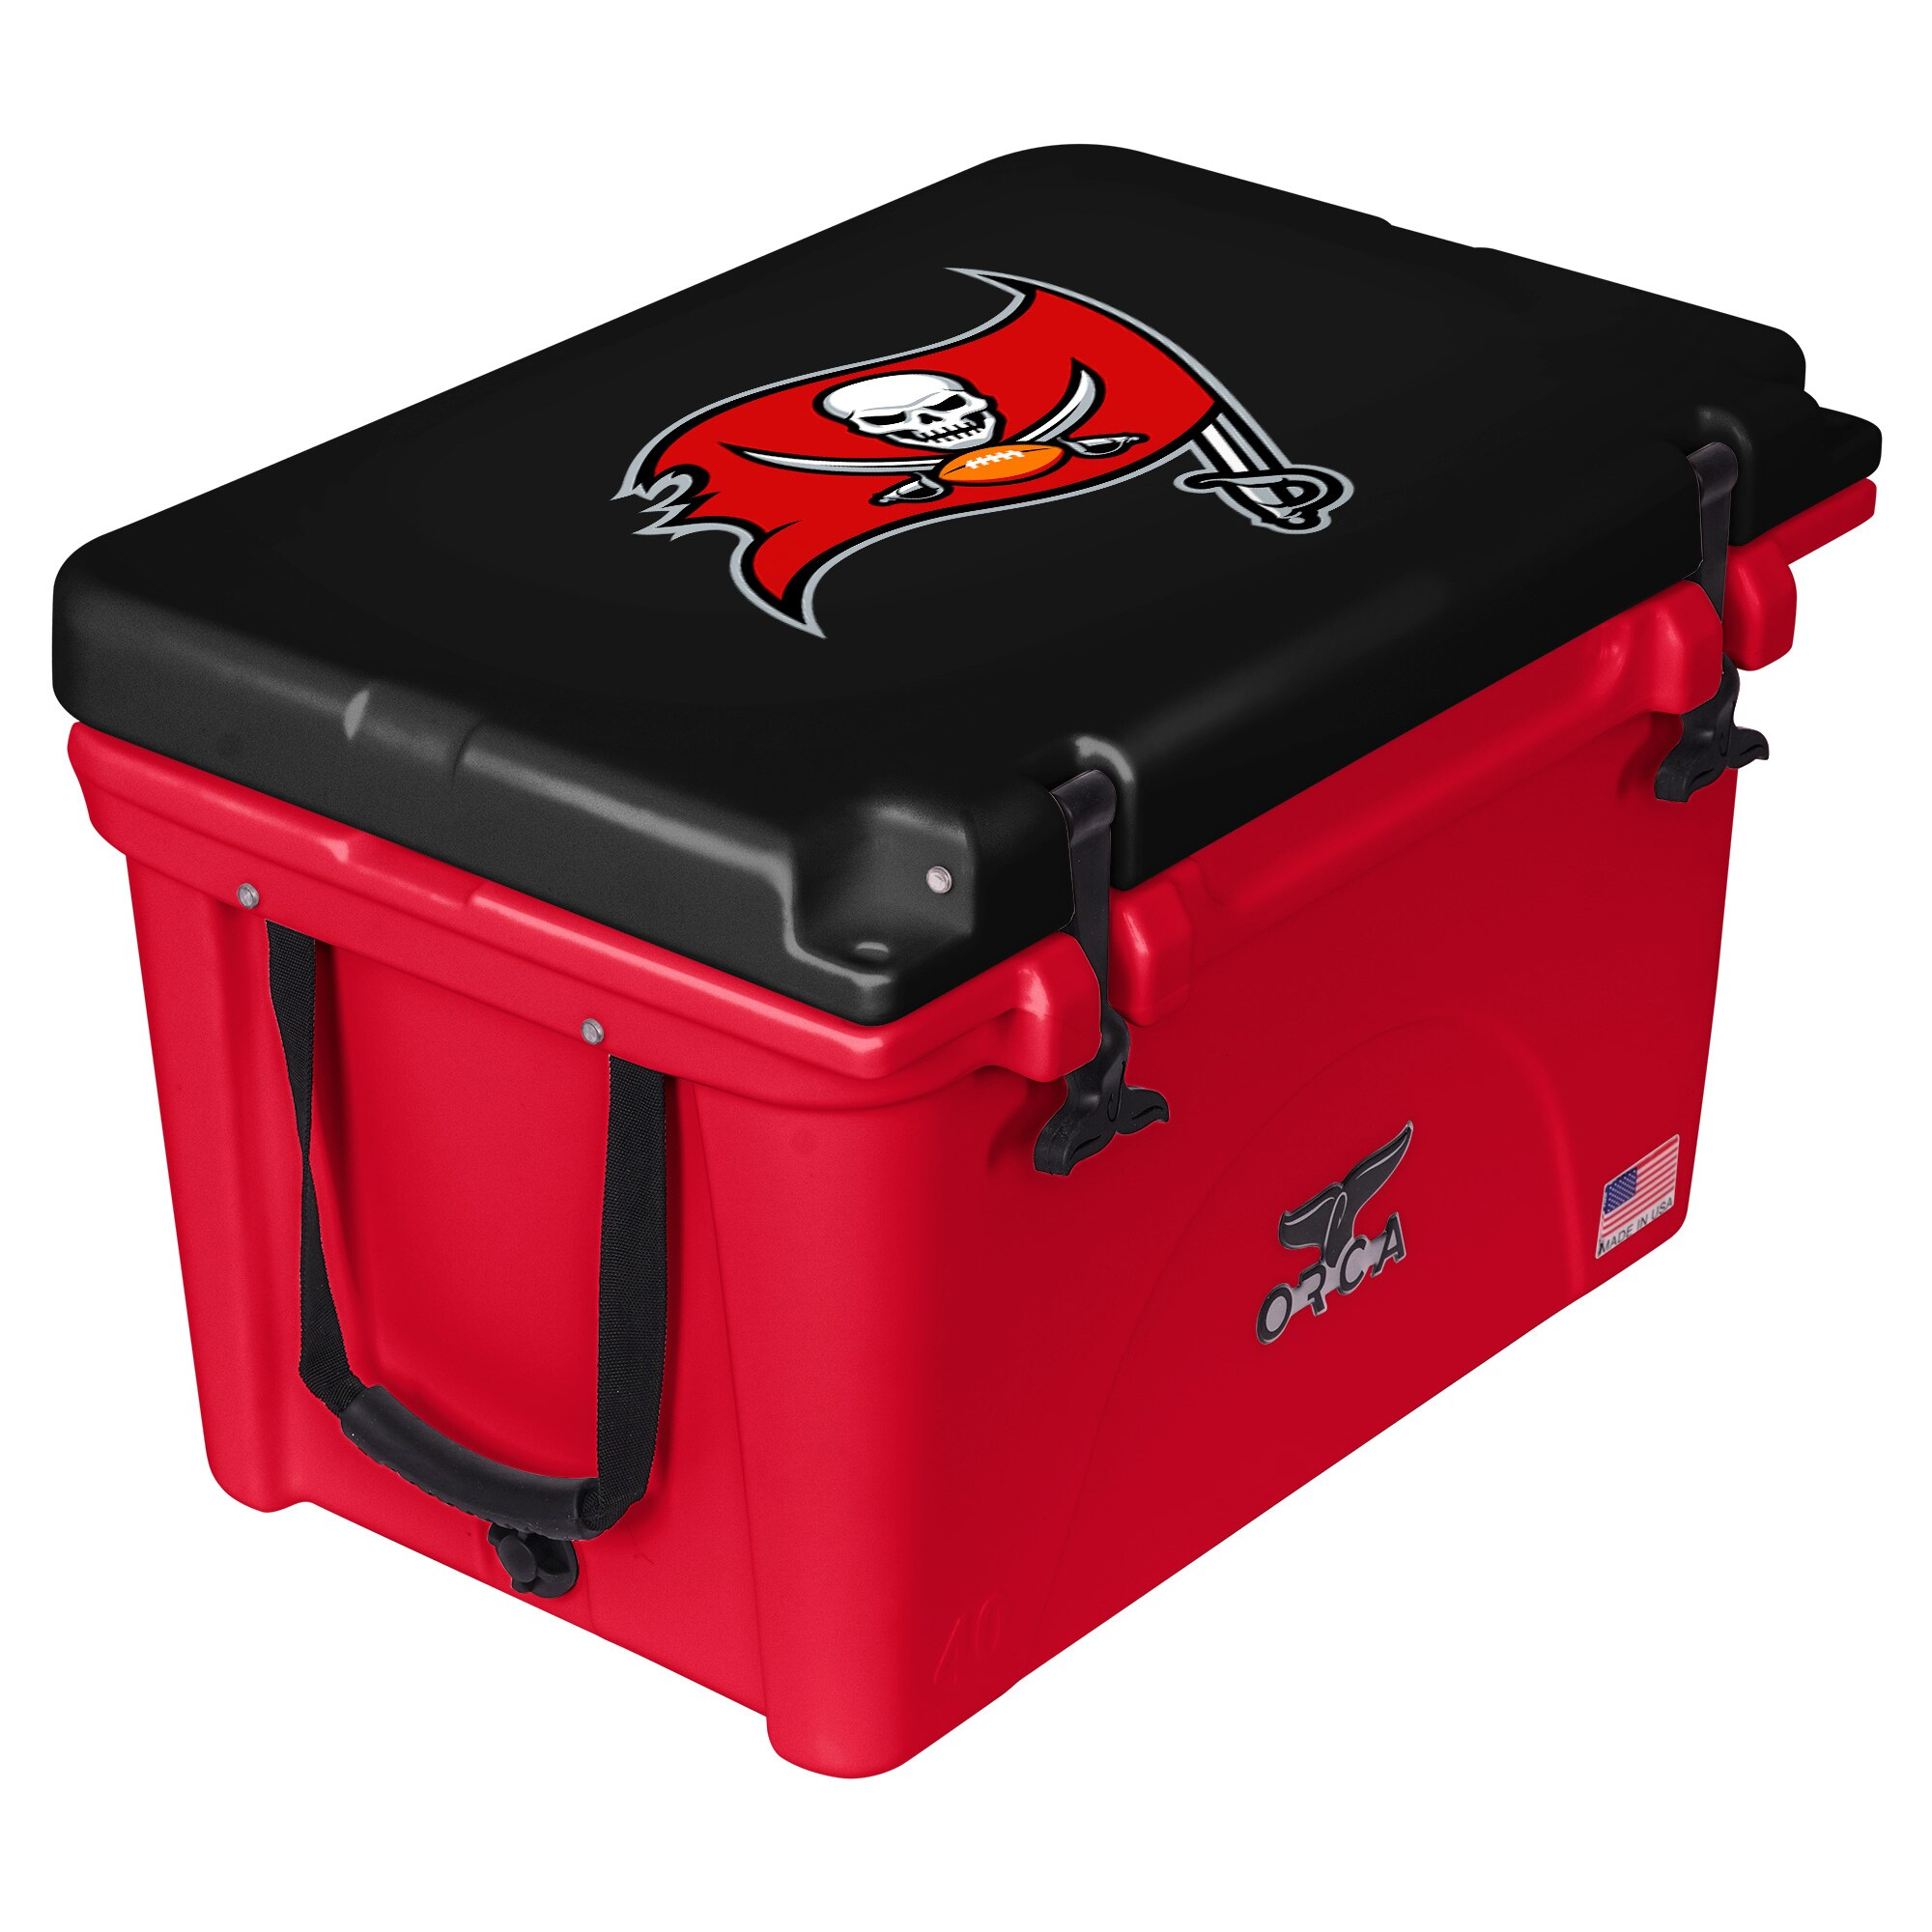 Tampa Bay Buccaneers ORCA 40-Quart Hard-Sided Cooler - Red/Black